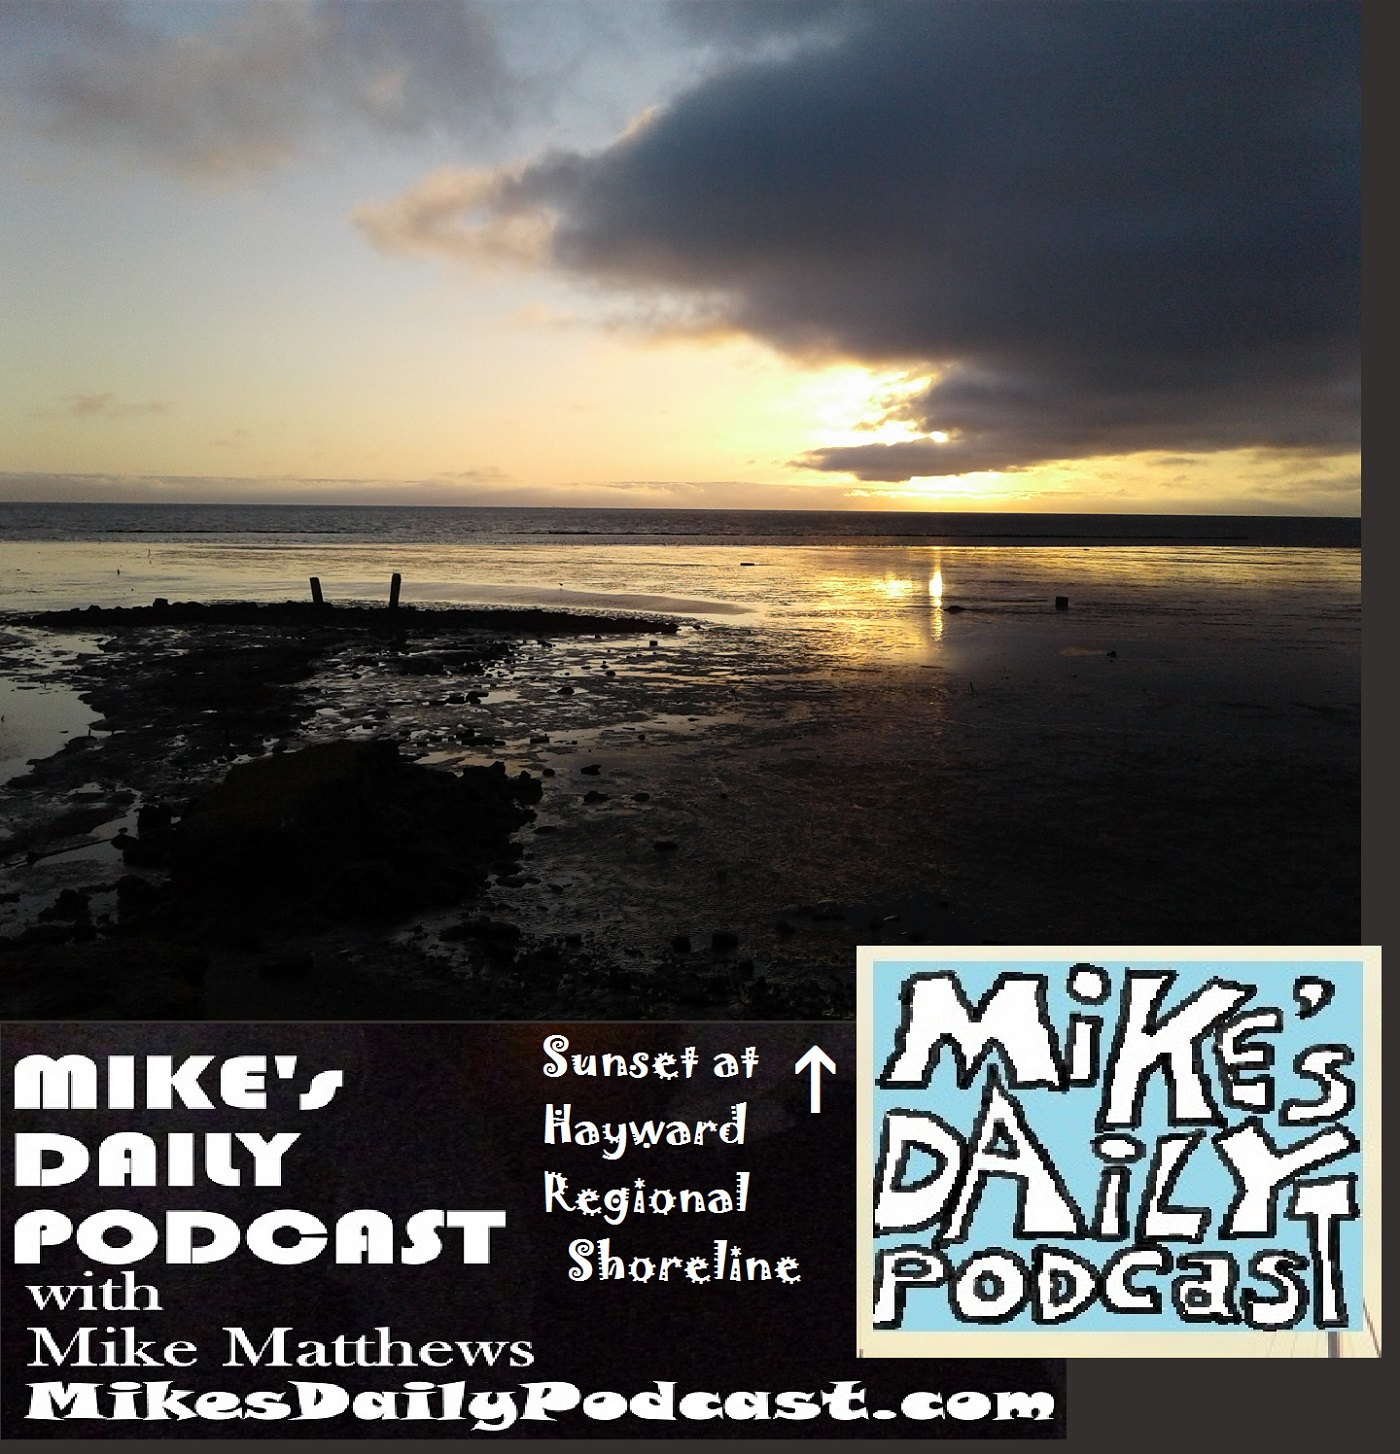 MIKEs DAILY PODCAST 1169 Hayward Regional Shoreline sunset